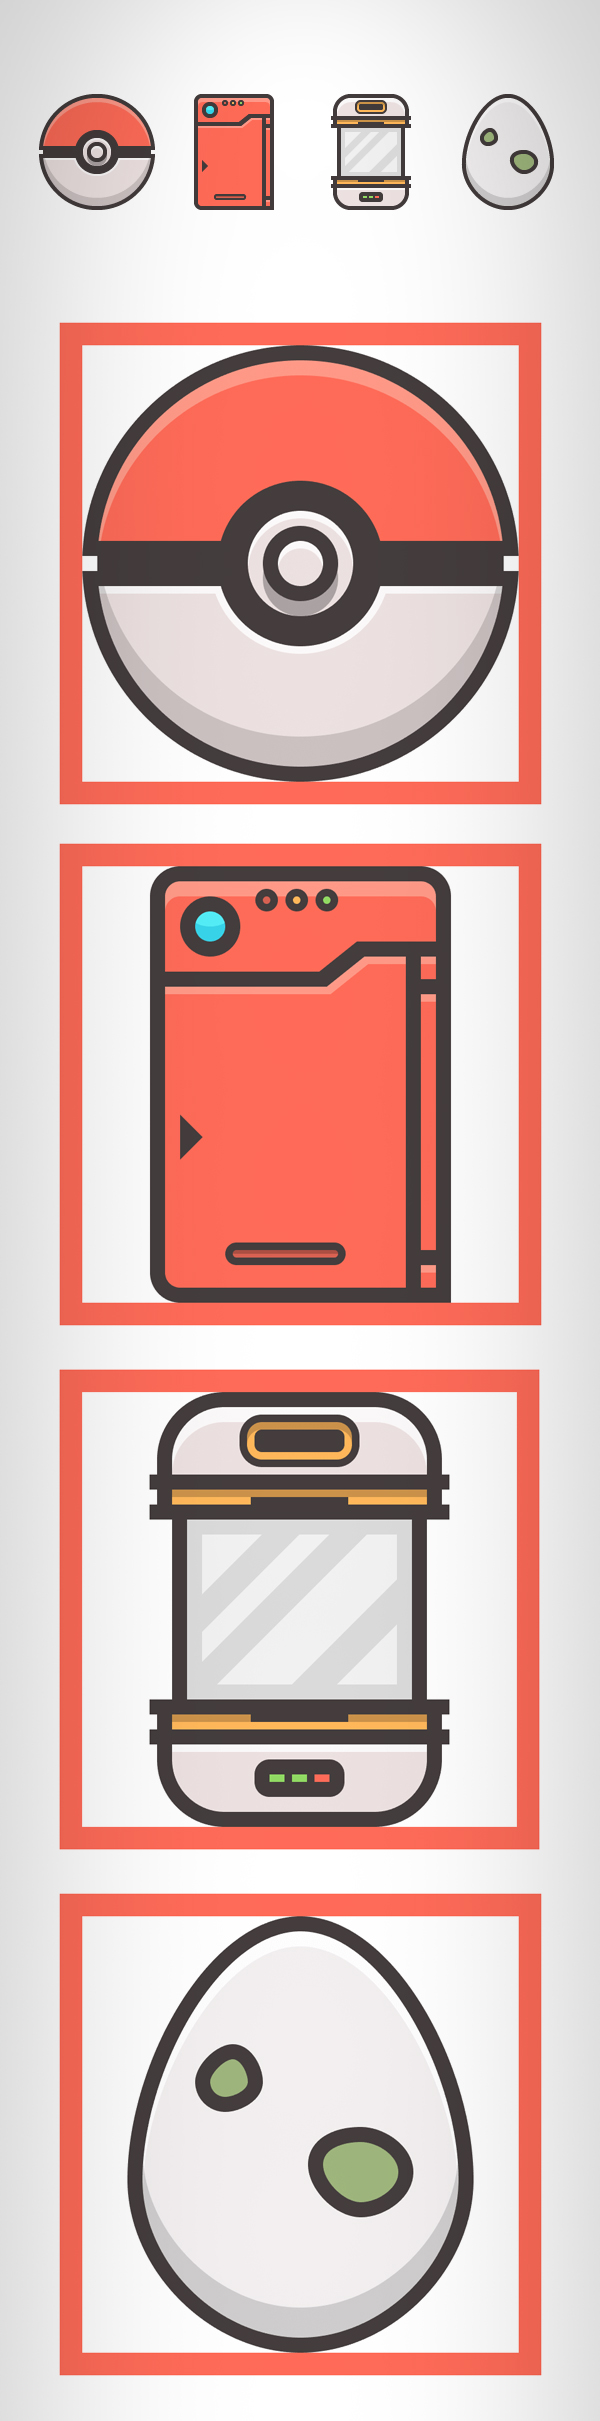 How to Create a Pokemon Themed Icon Pack in Adobe Illustrator